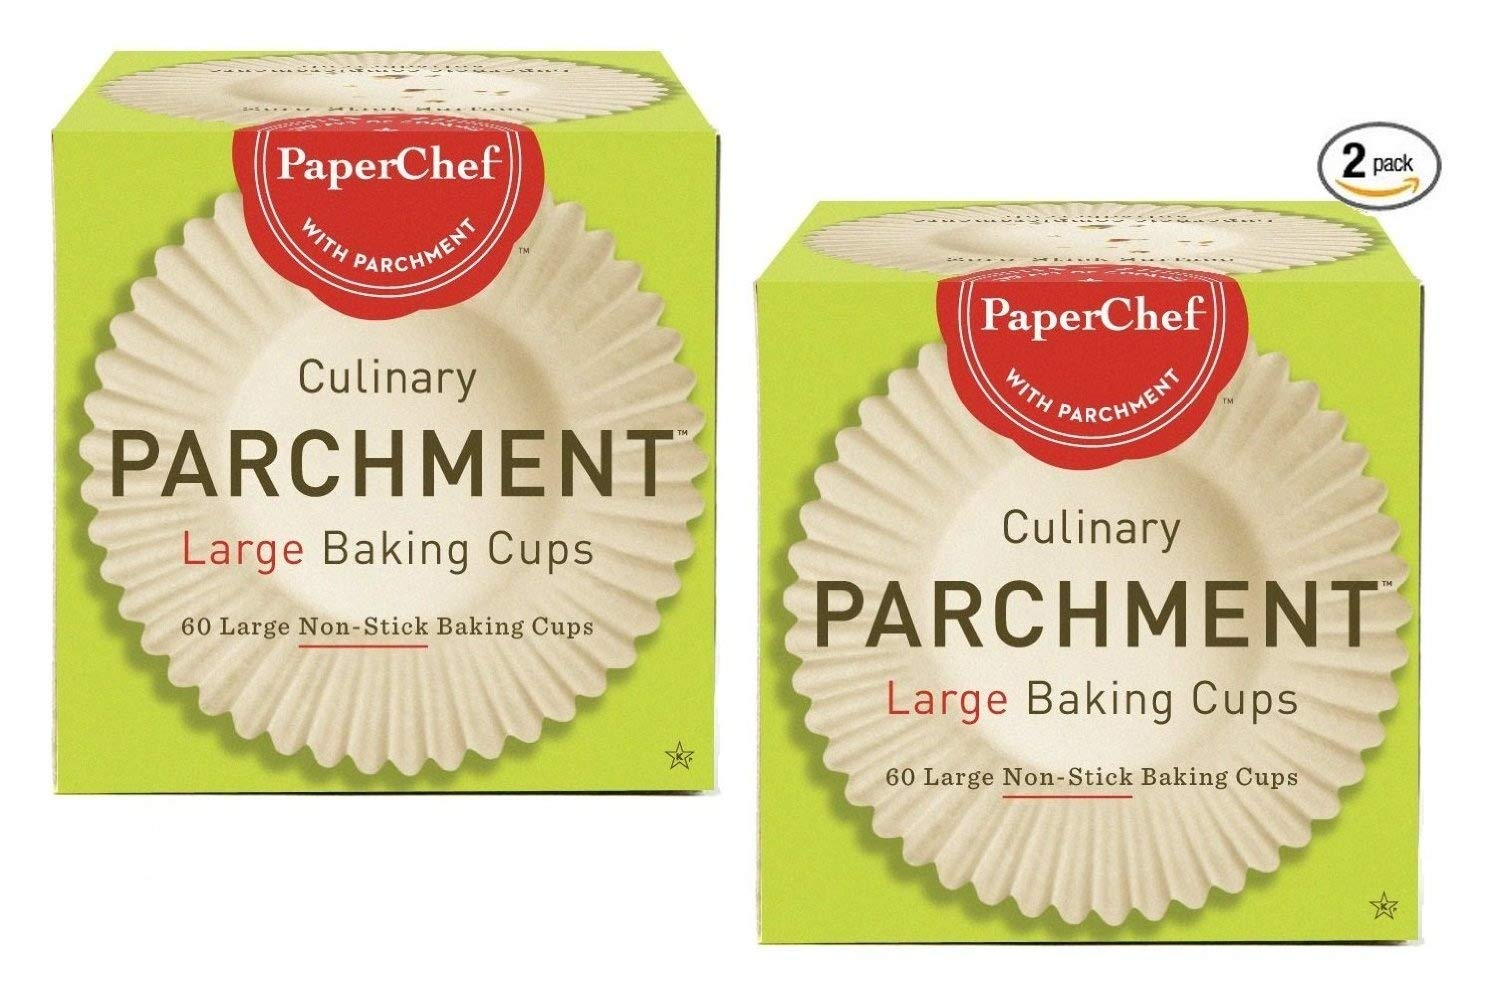 (2 Pack) Standard Paper Cupcake Liners / Baking Cups, 60-ct / Box by PaperChef Paper Chef 04990